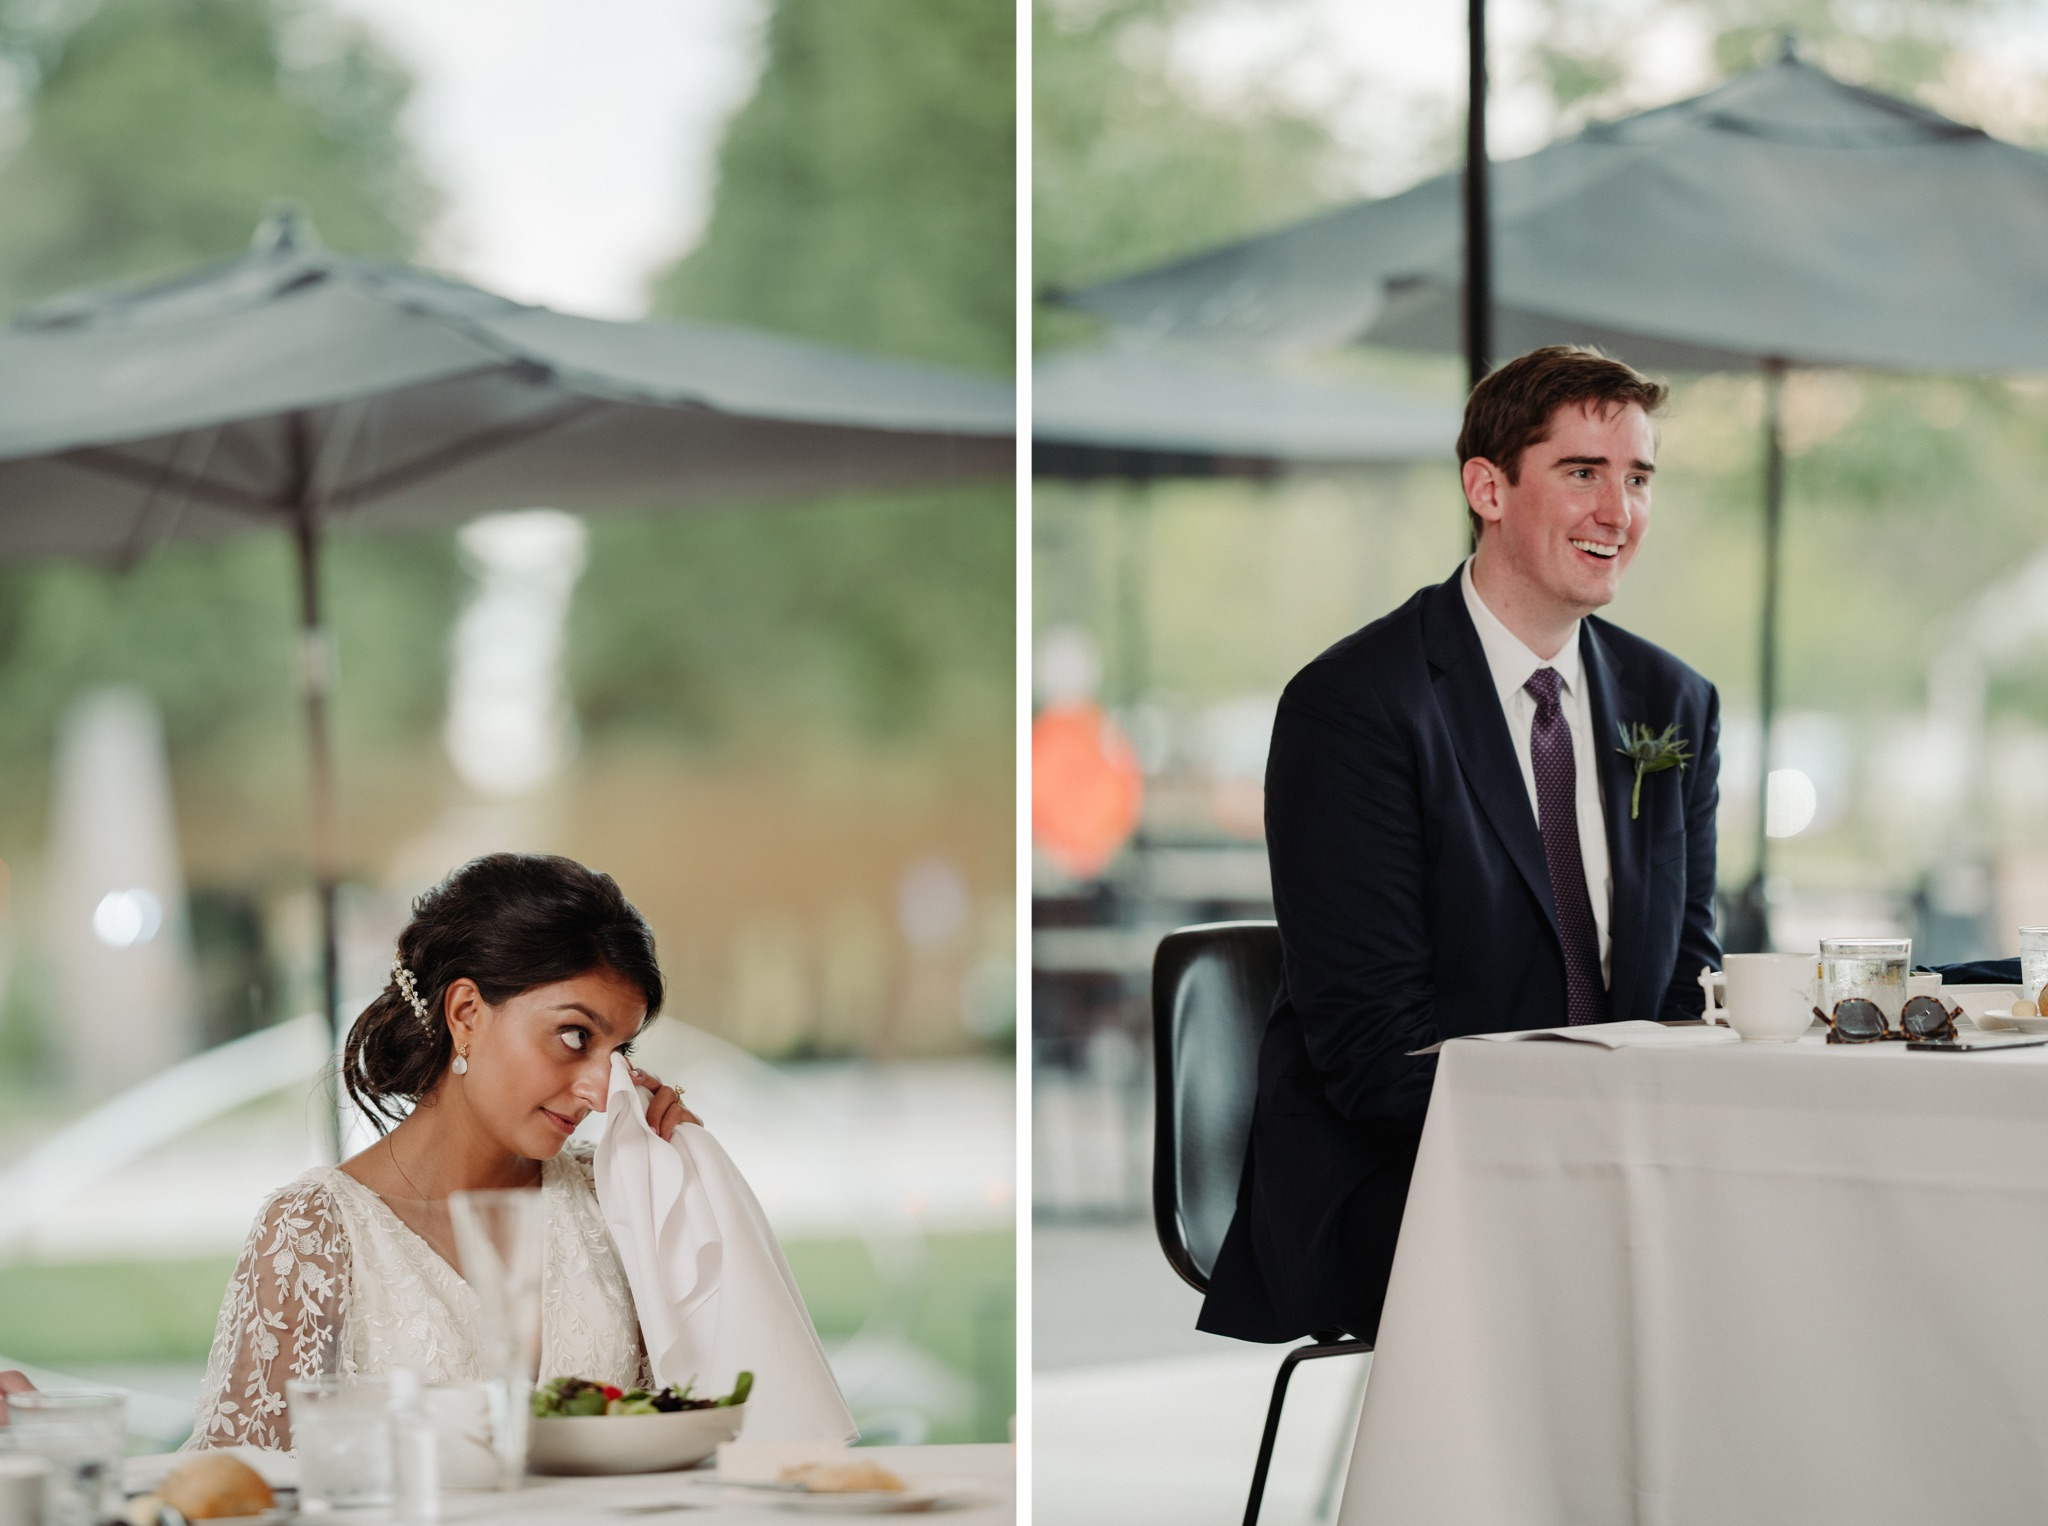 bride and groom sitting at table, bride wiping a tear walker art center wedding